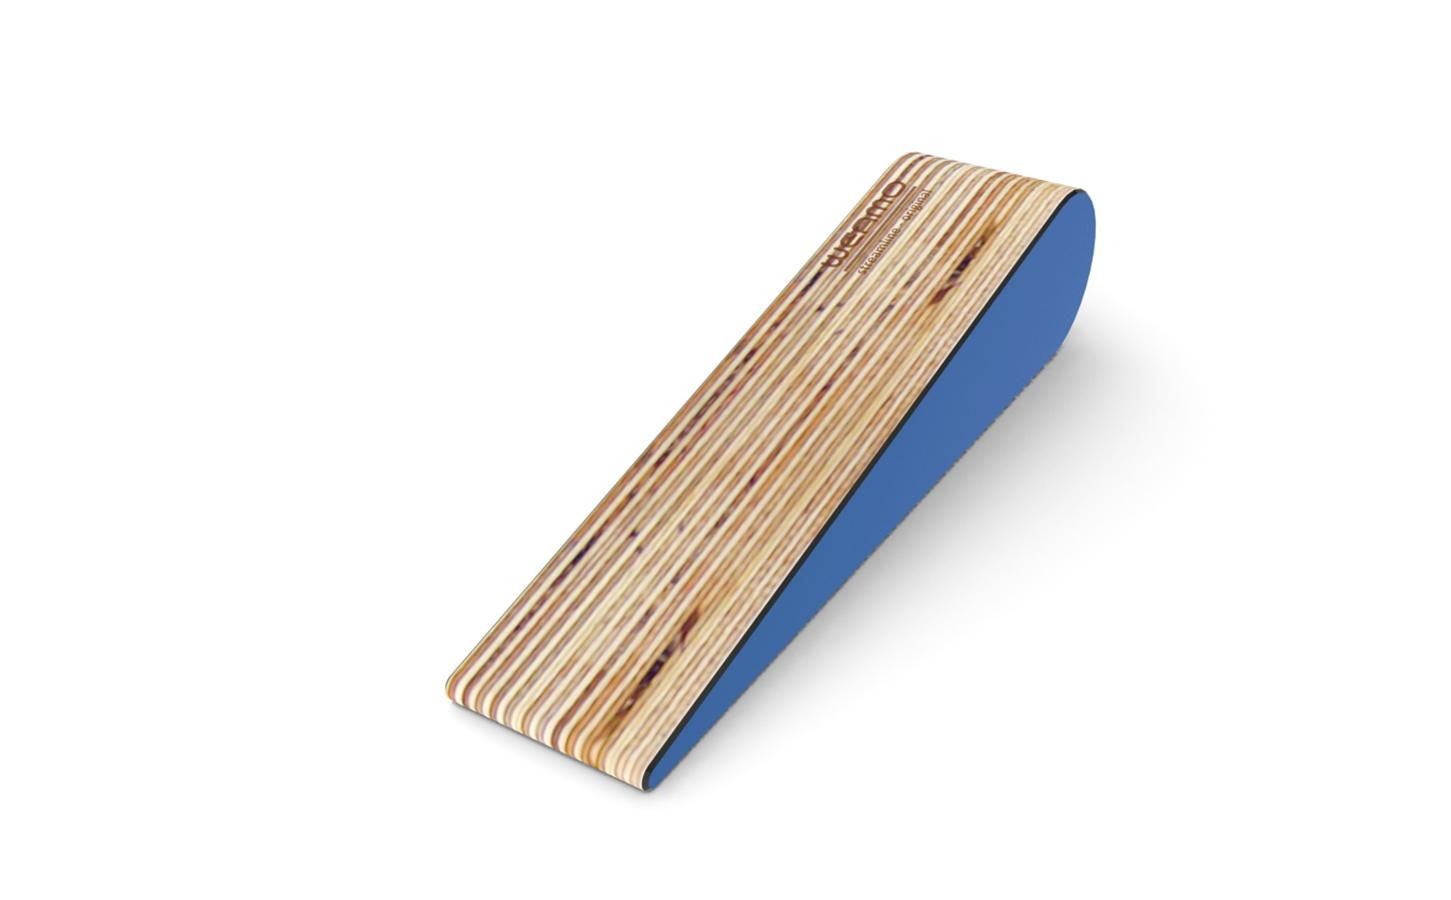 Streamline Original Doorstop - Deep Ocean Blue